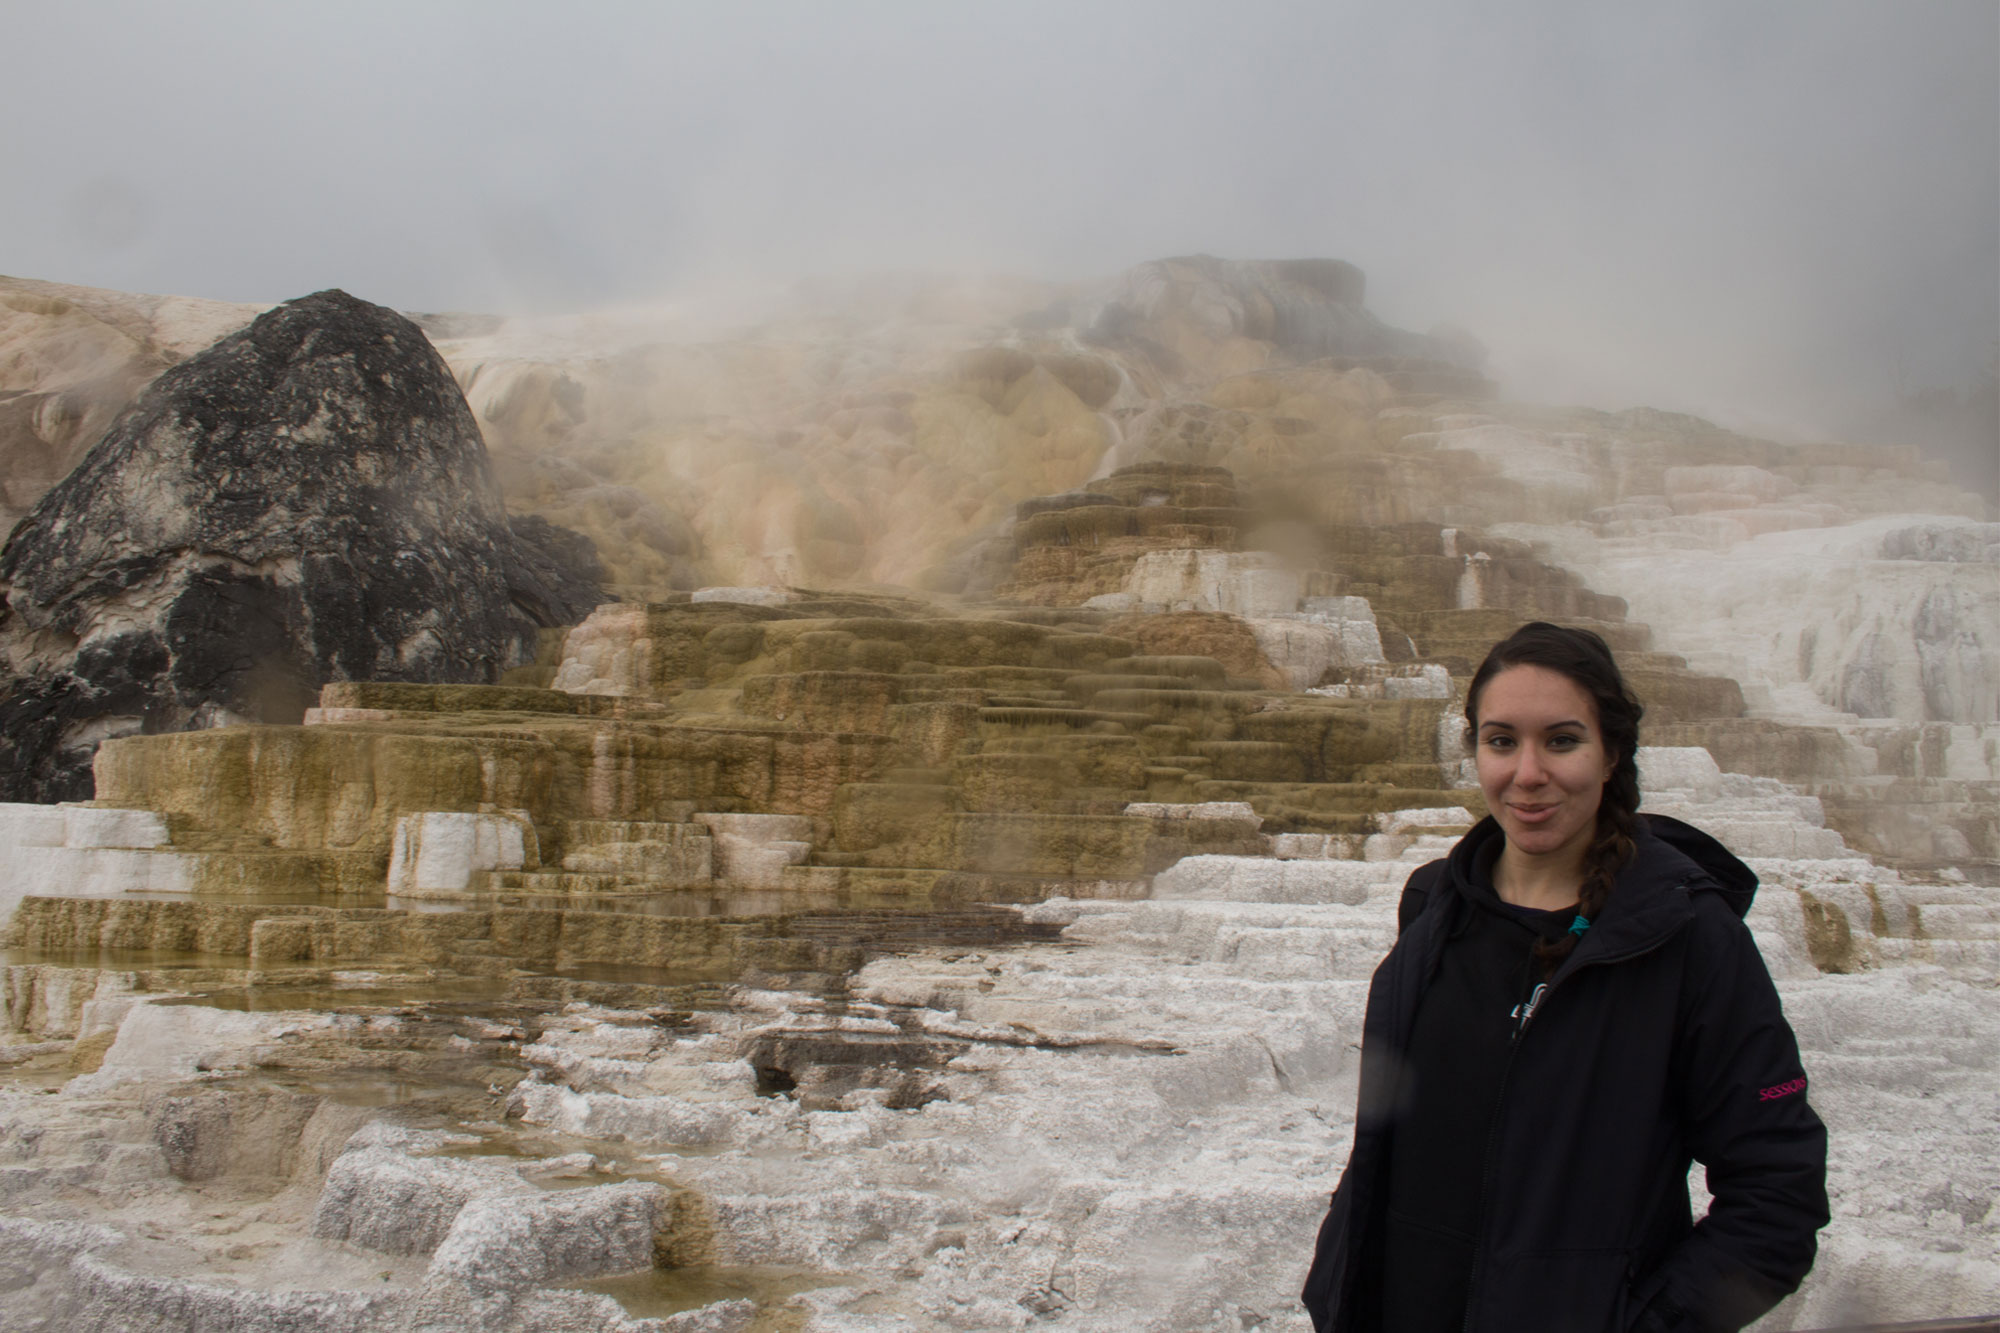 Amy at Mammoth Hot Springs, Yellowstone National Park